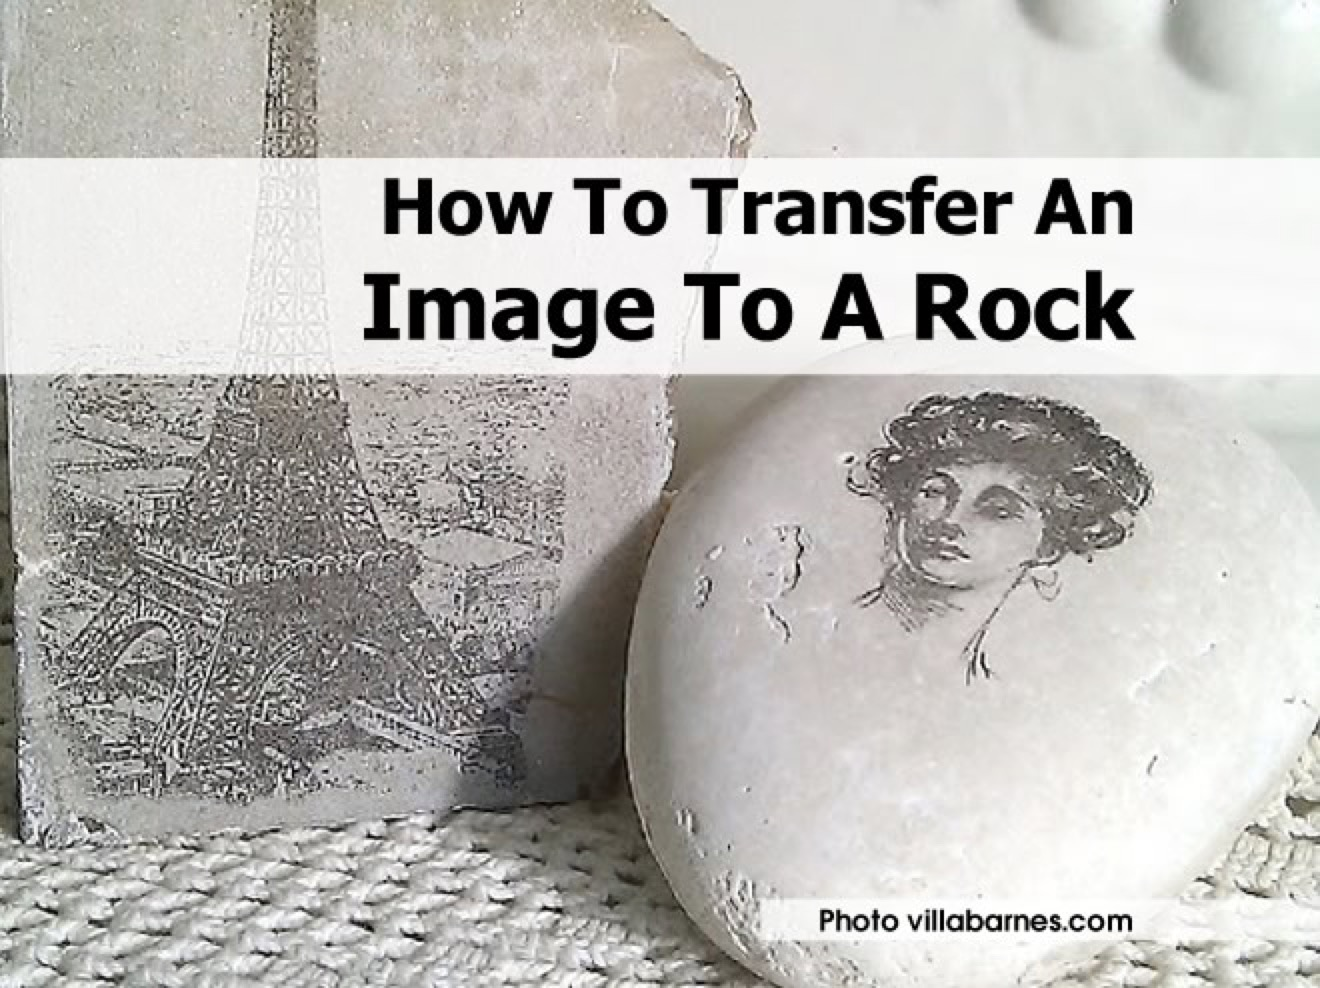 image-to-a-rock-10